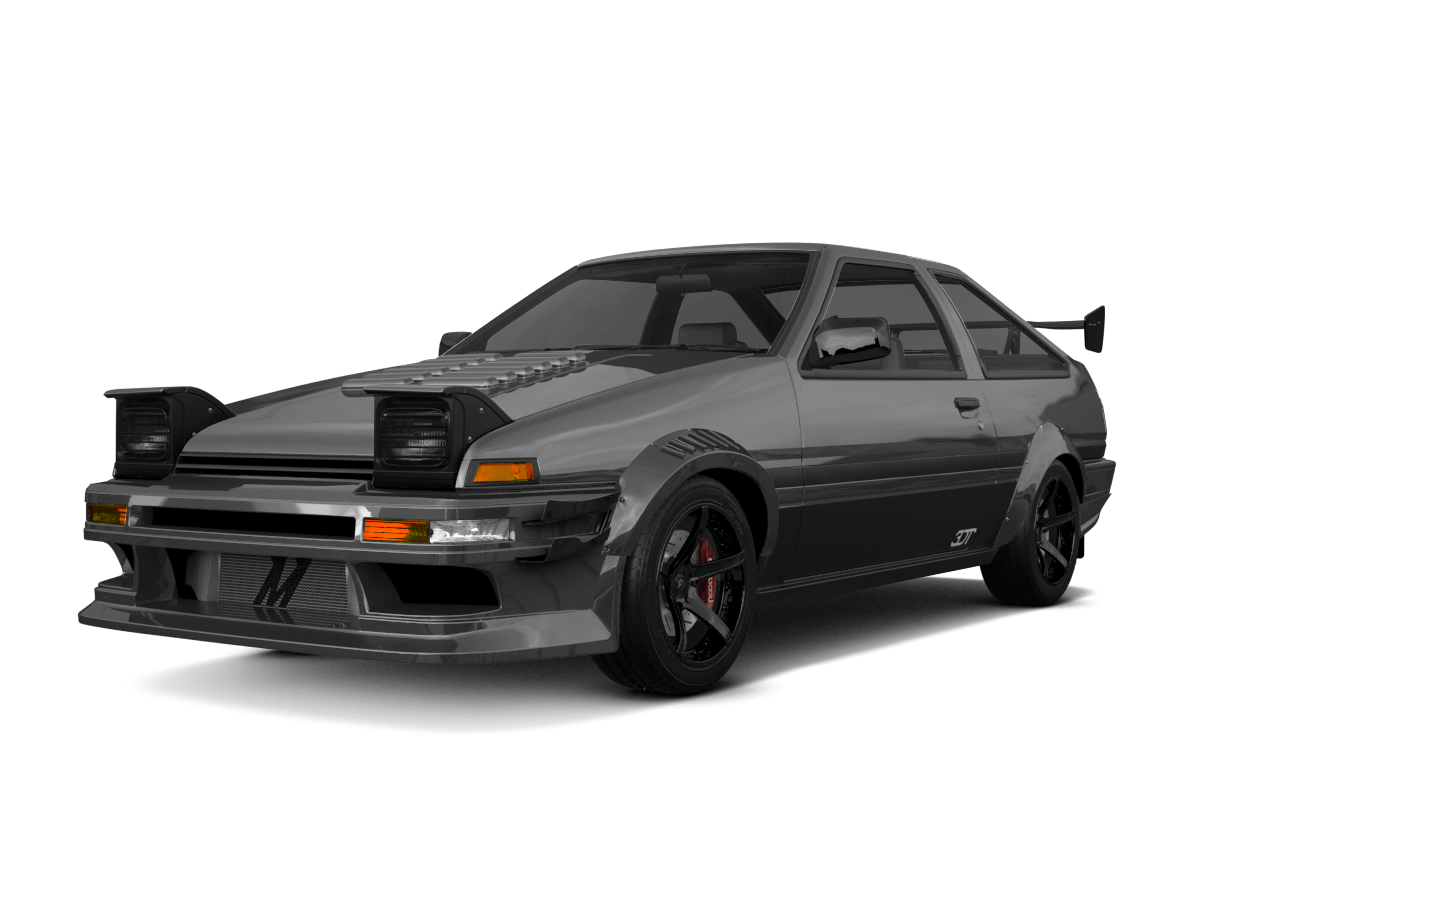 Toyota AE86 3 Door Hatchback 1985 tuning